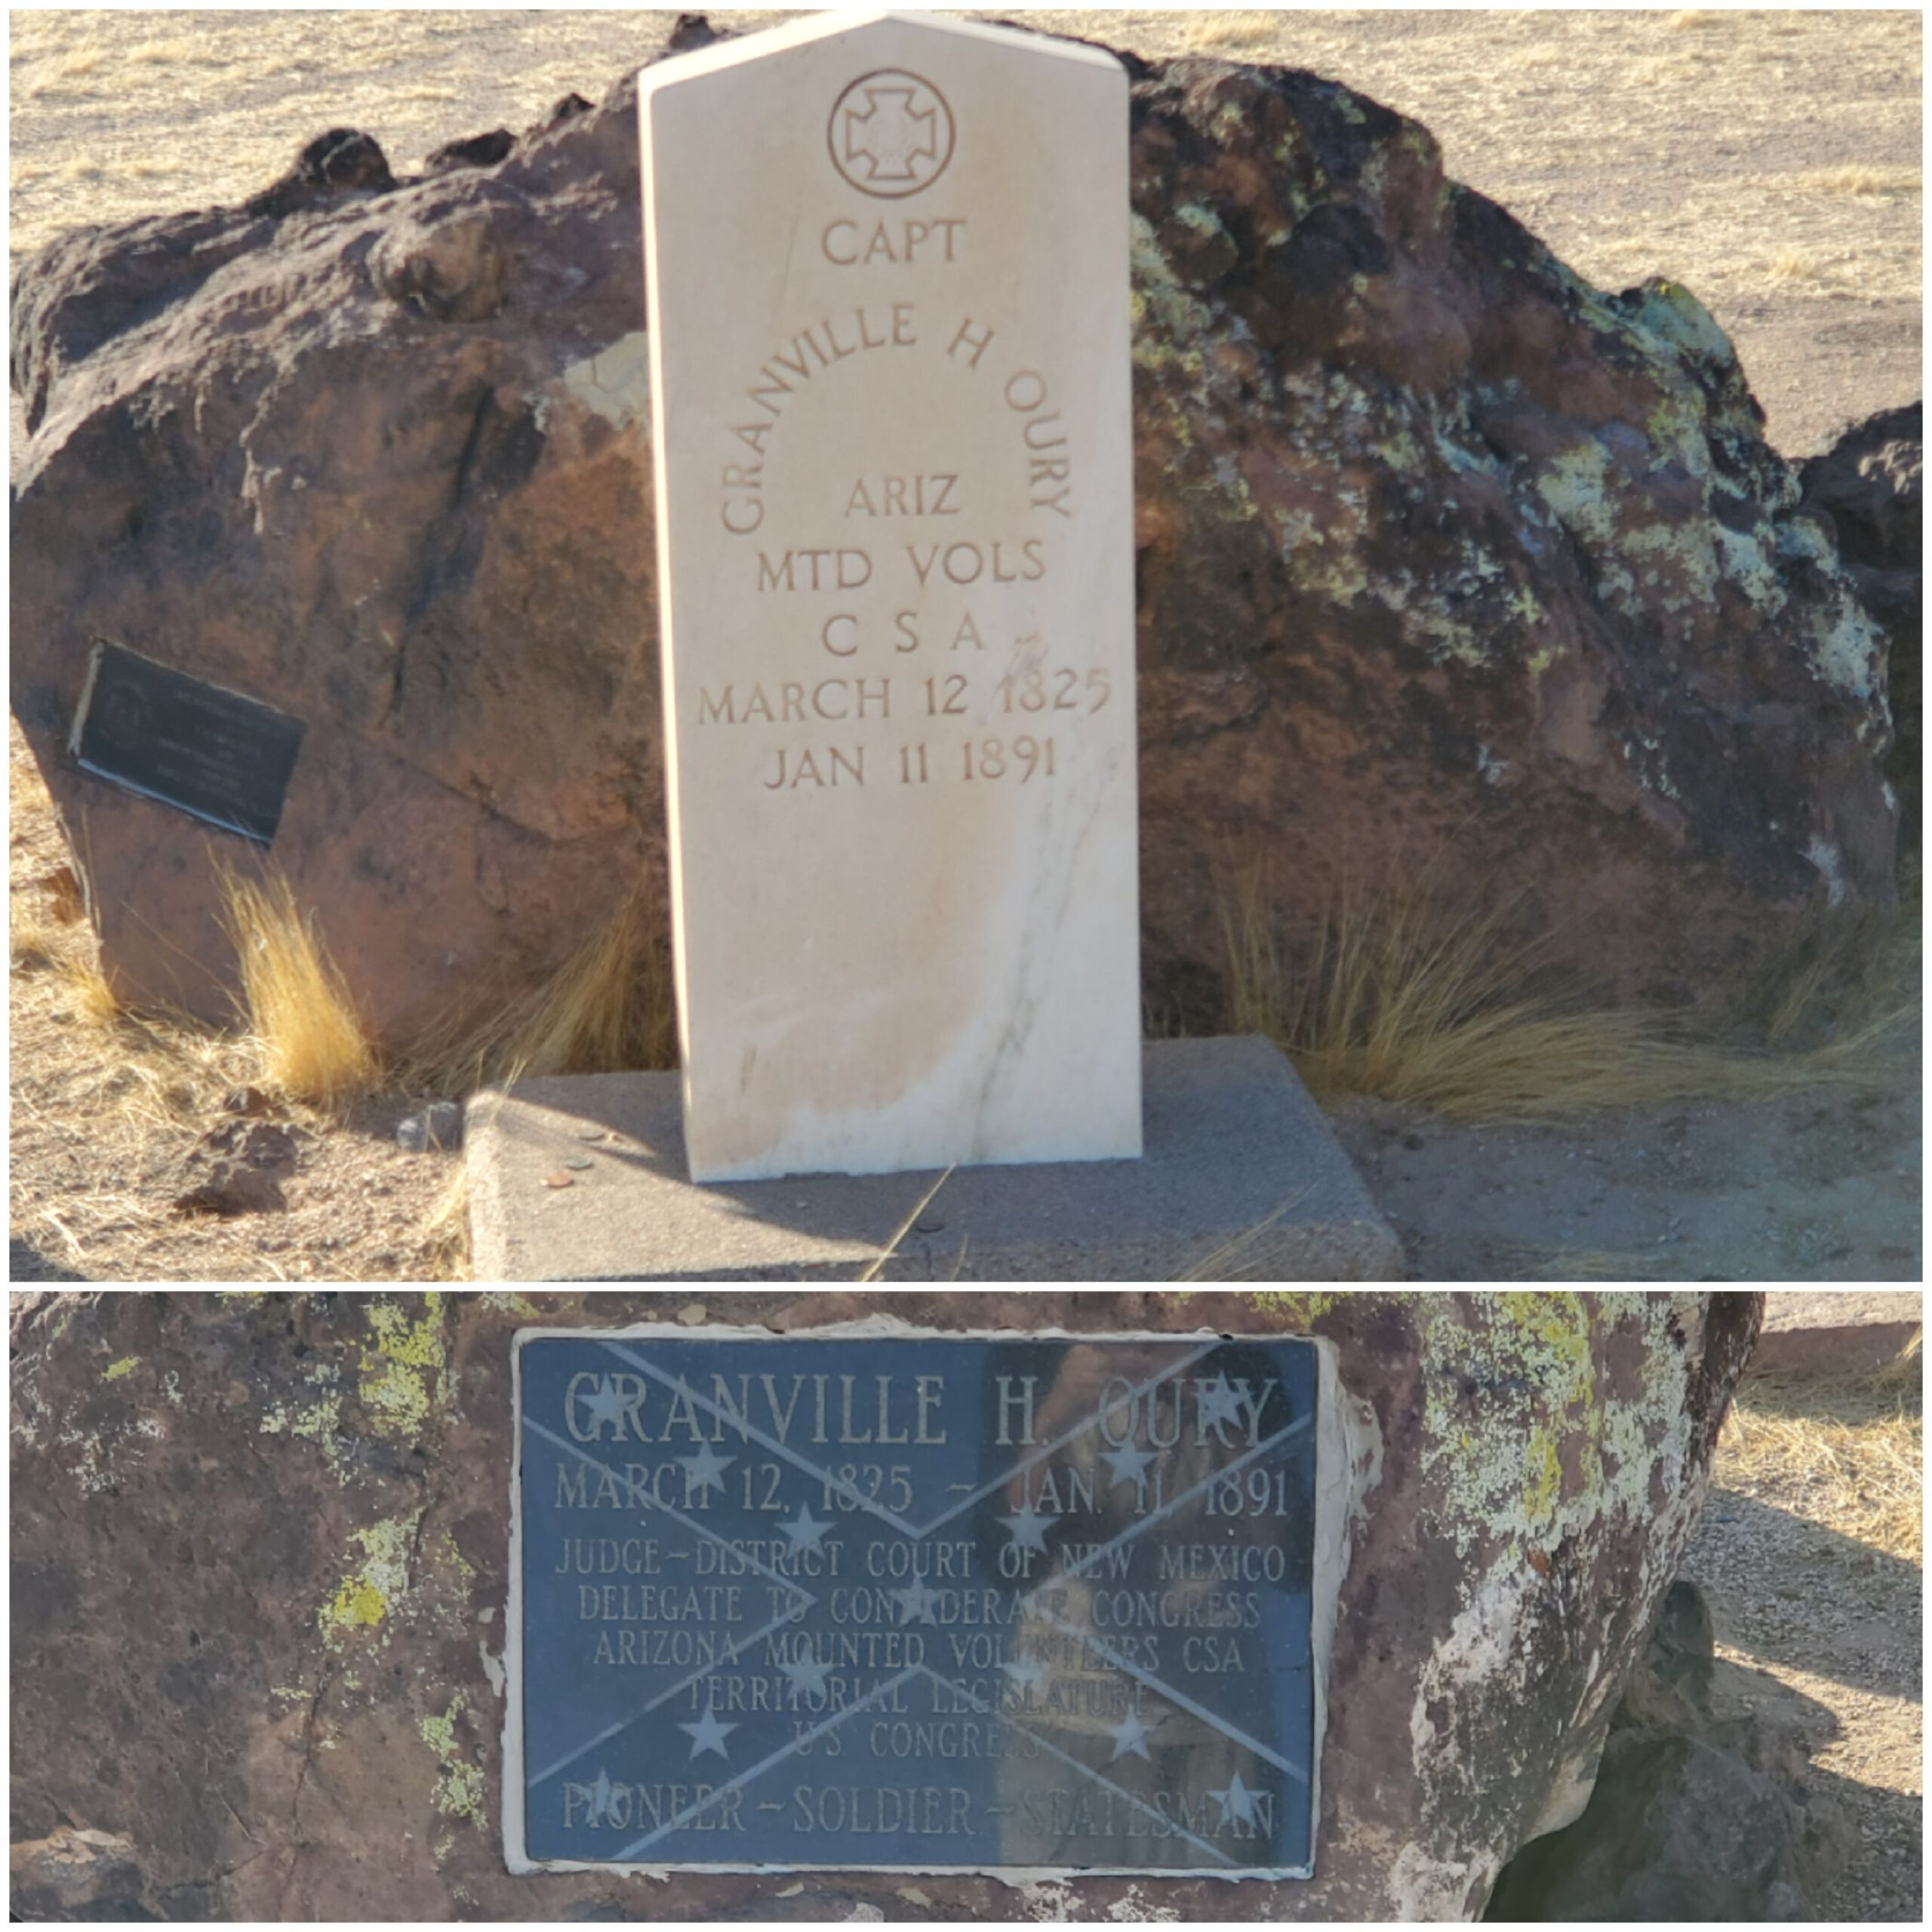 Captain Oury's government issue marker is on the top of this image while the engraved polished stone is beneath. I took both of these photos in November of 2020